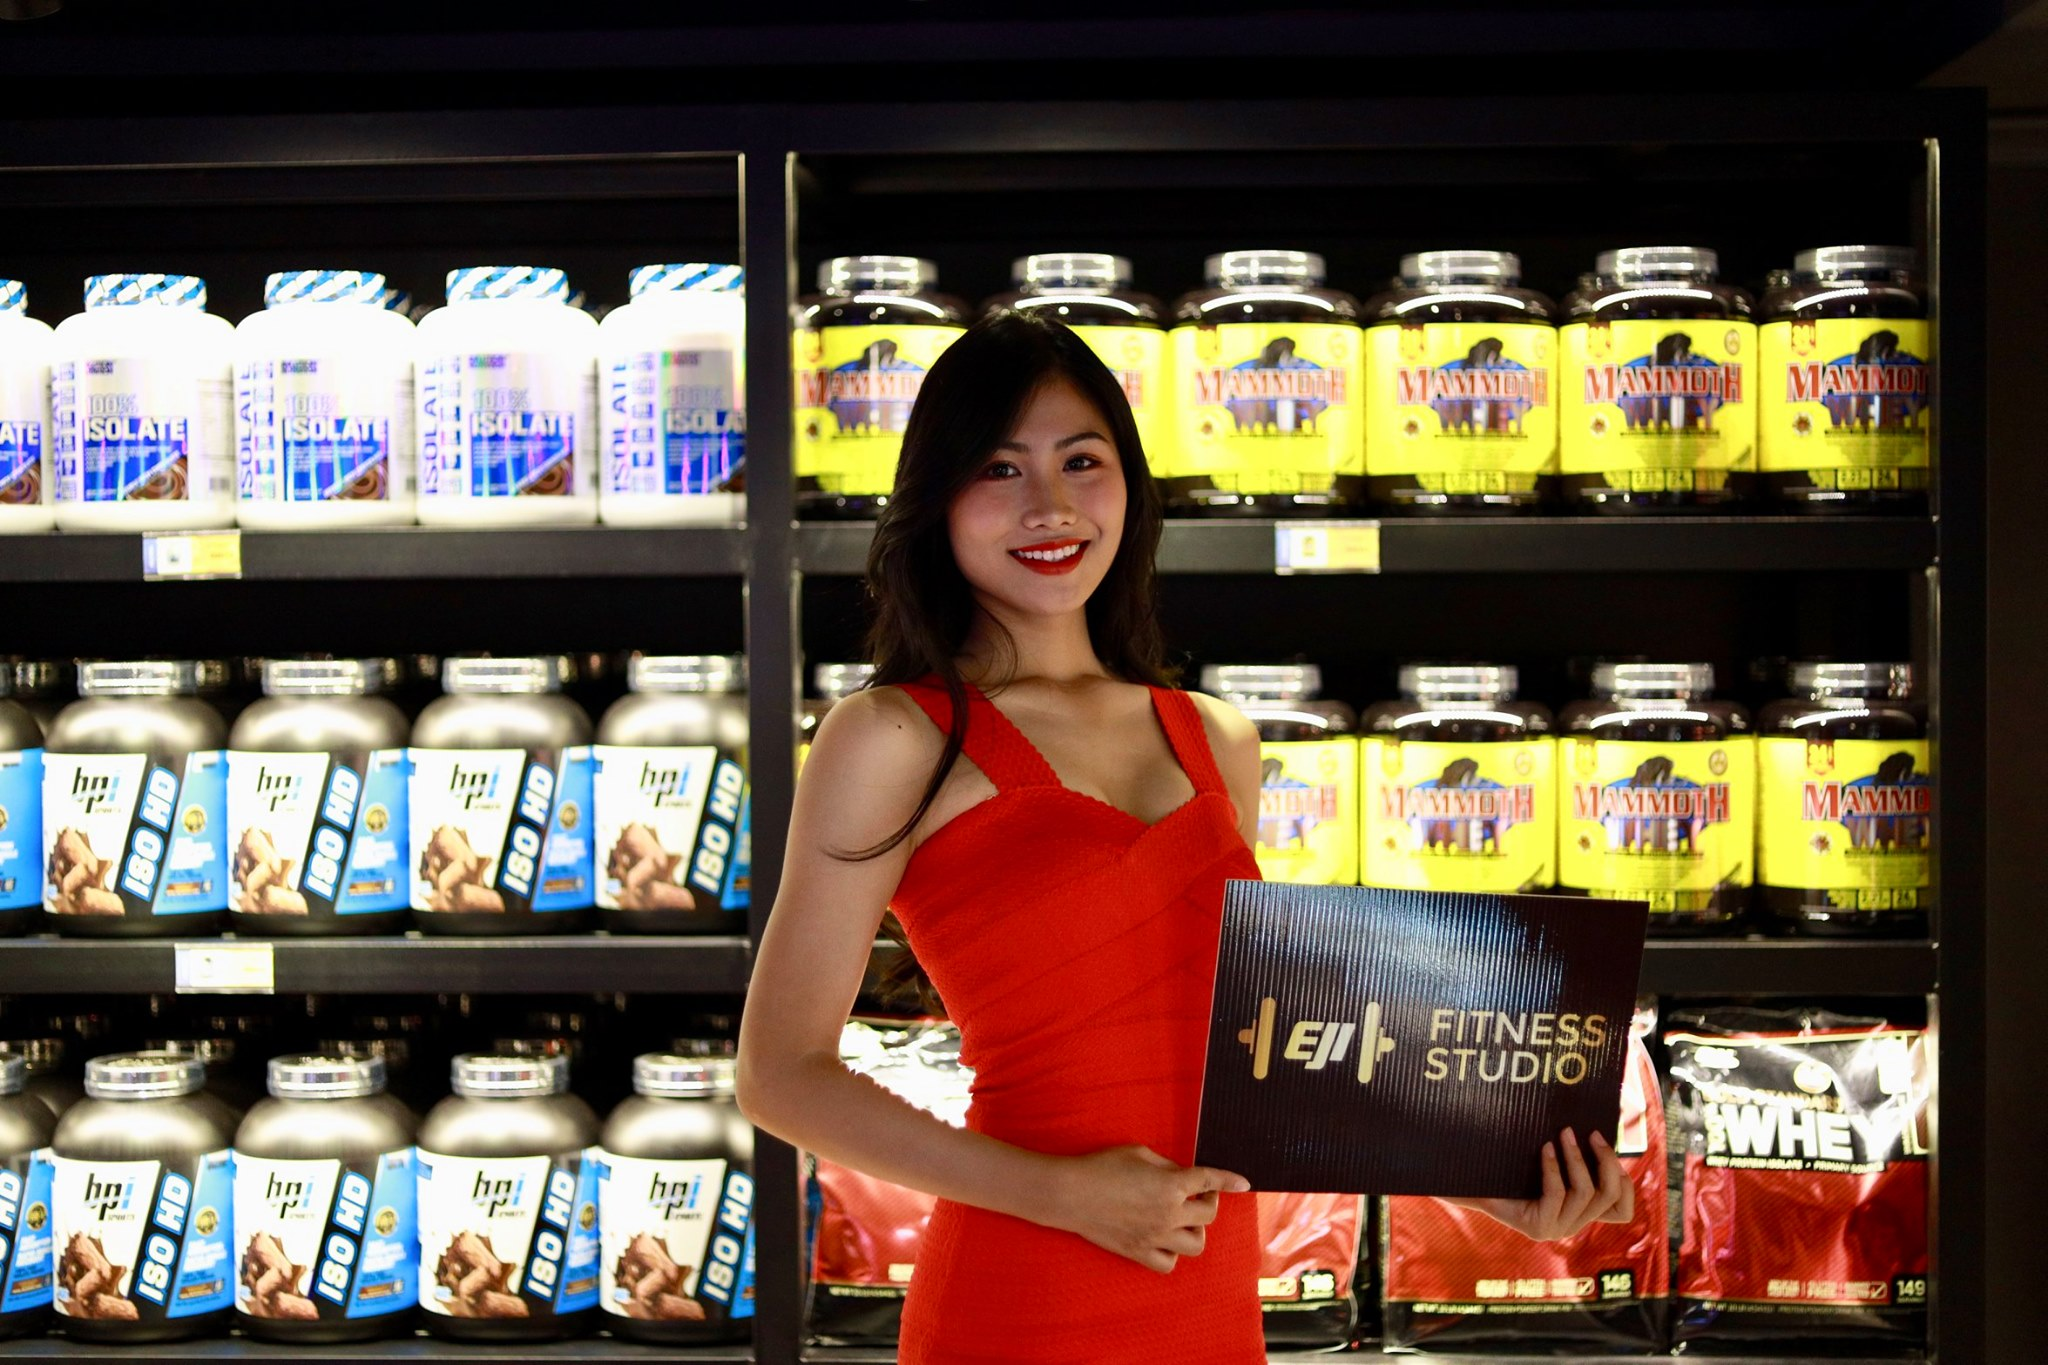 Eji Nutrition Premium Outlet Launching11